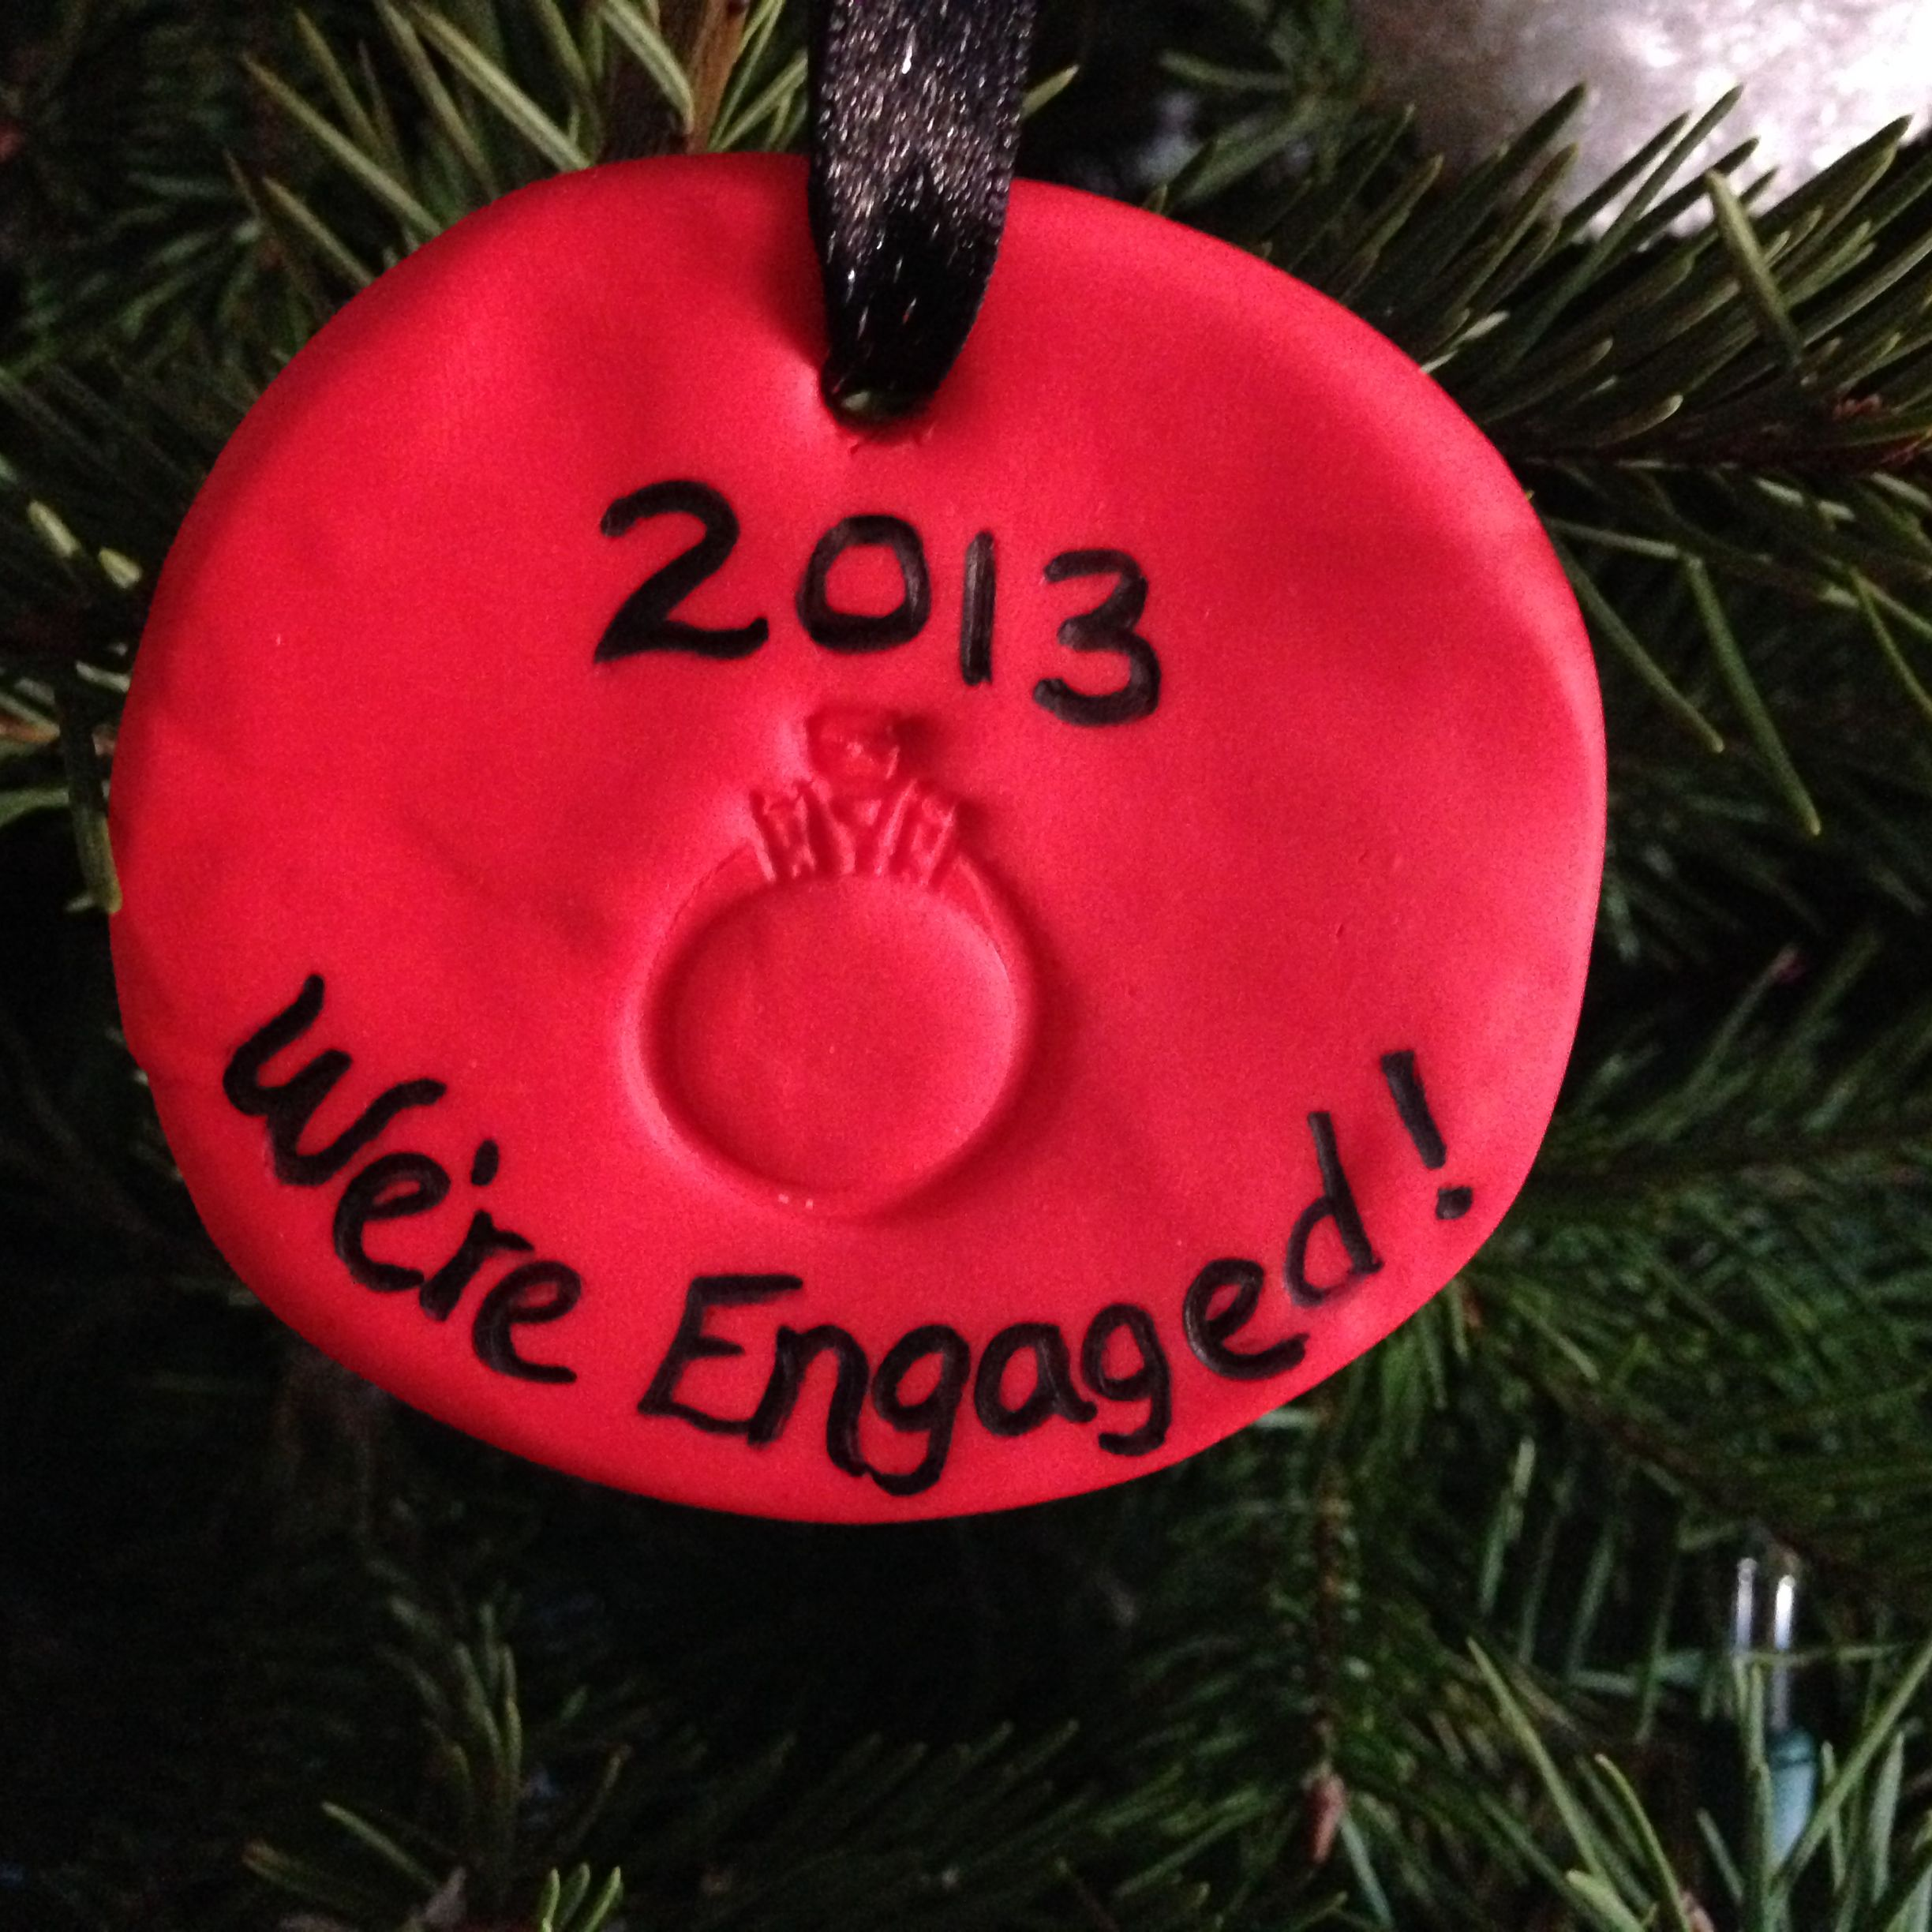 Diy engagement ornament engagement ring modeling clay about oz